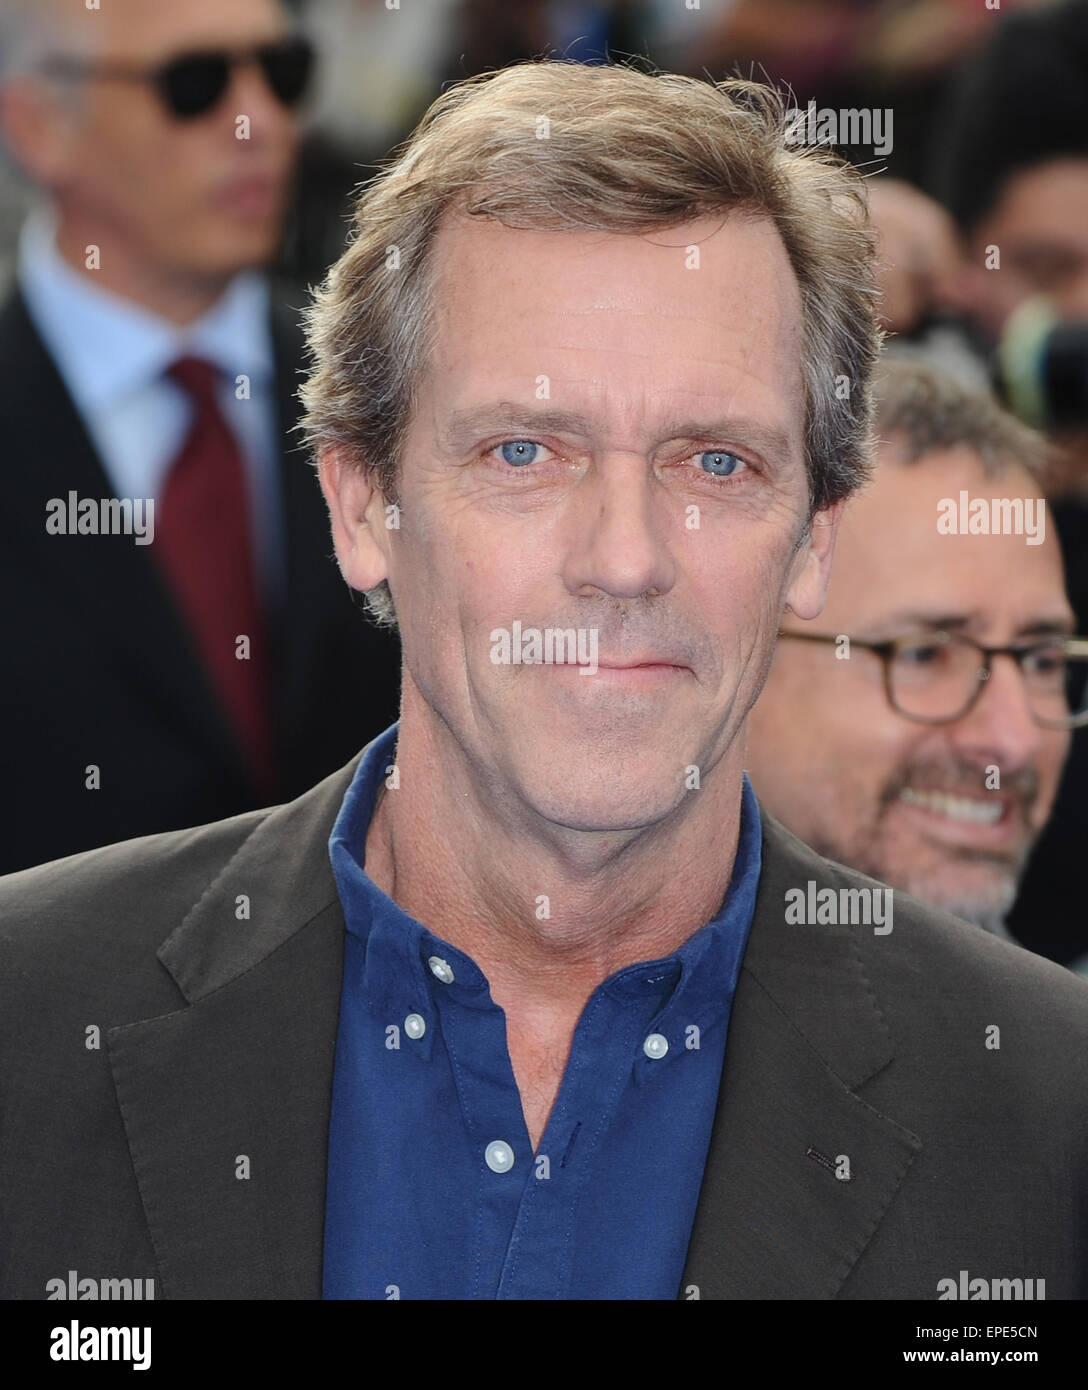 London, UK, UK. 17th May, 2015. Hugh Laurie attends the European Premiere of 'Tomorrowland: A World Beyond' - Stock Image